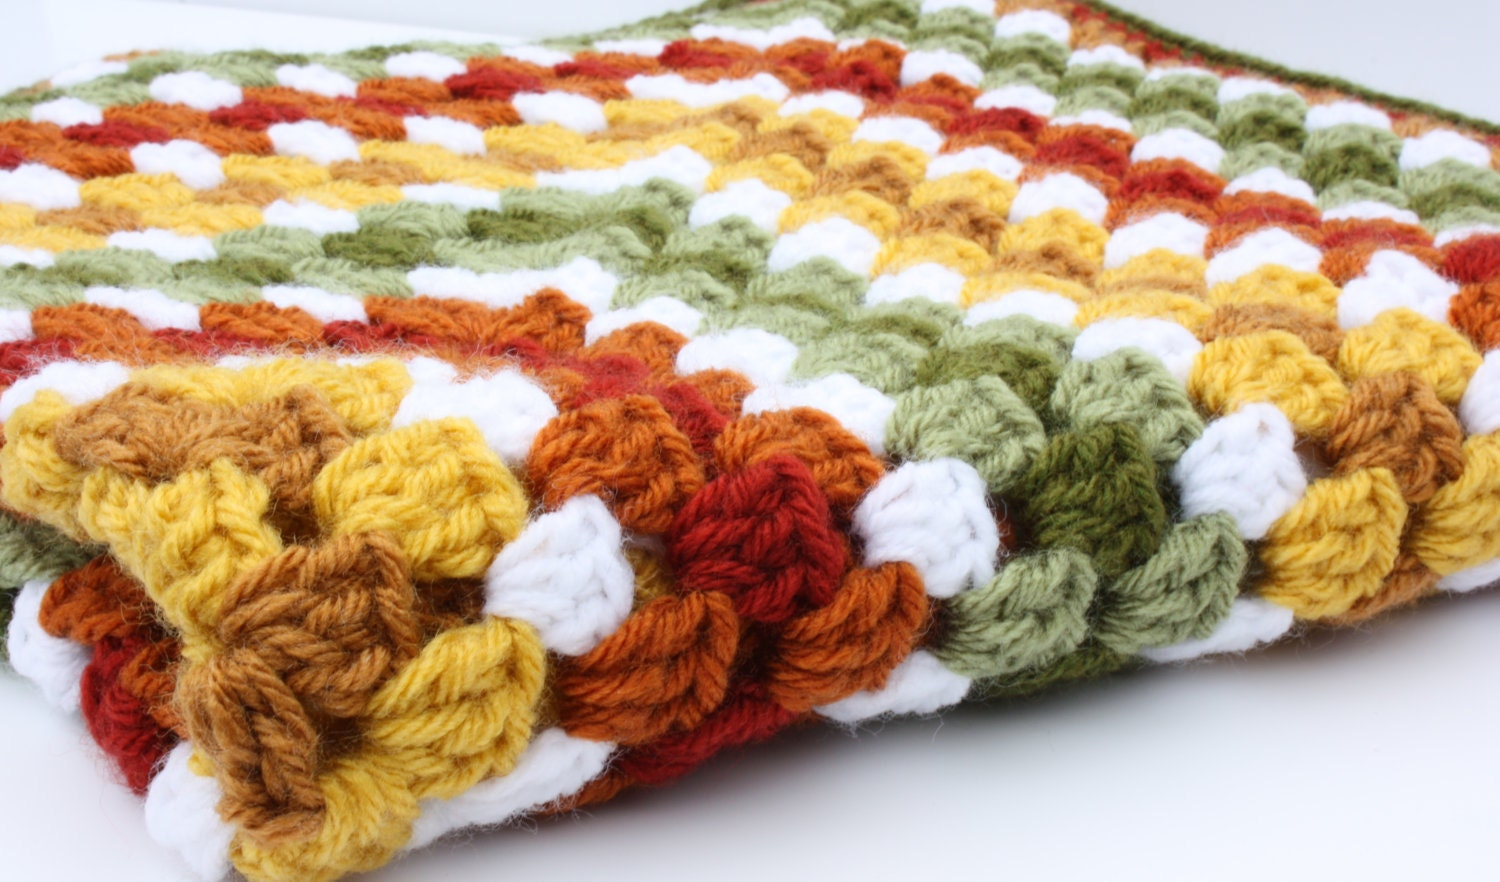 Crochet Granny Square Baby Blanket Fall Colors Rust Sage and Mustard - syble